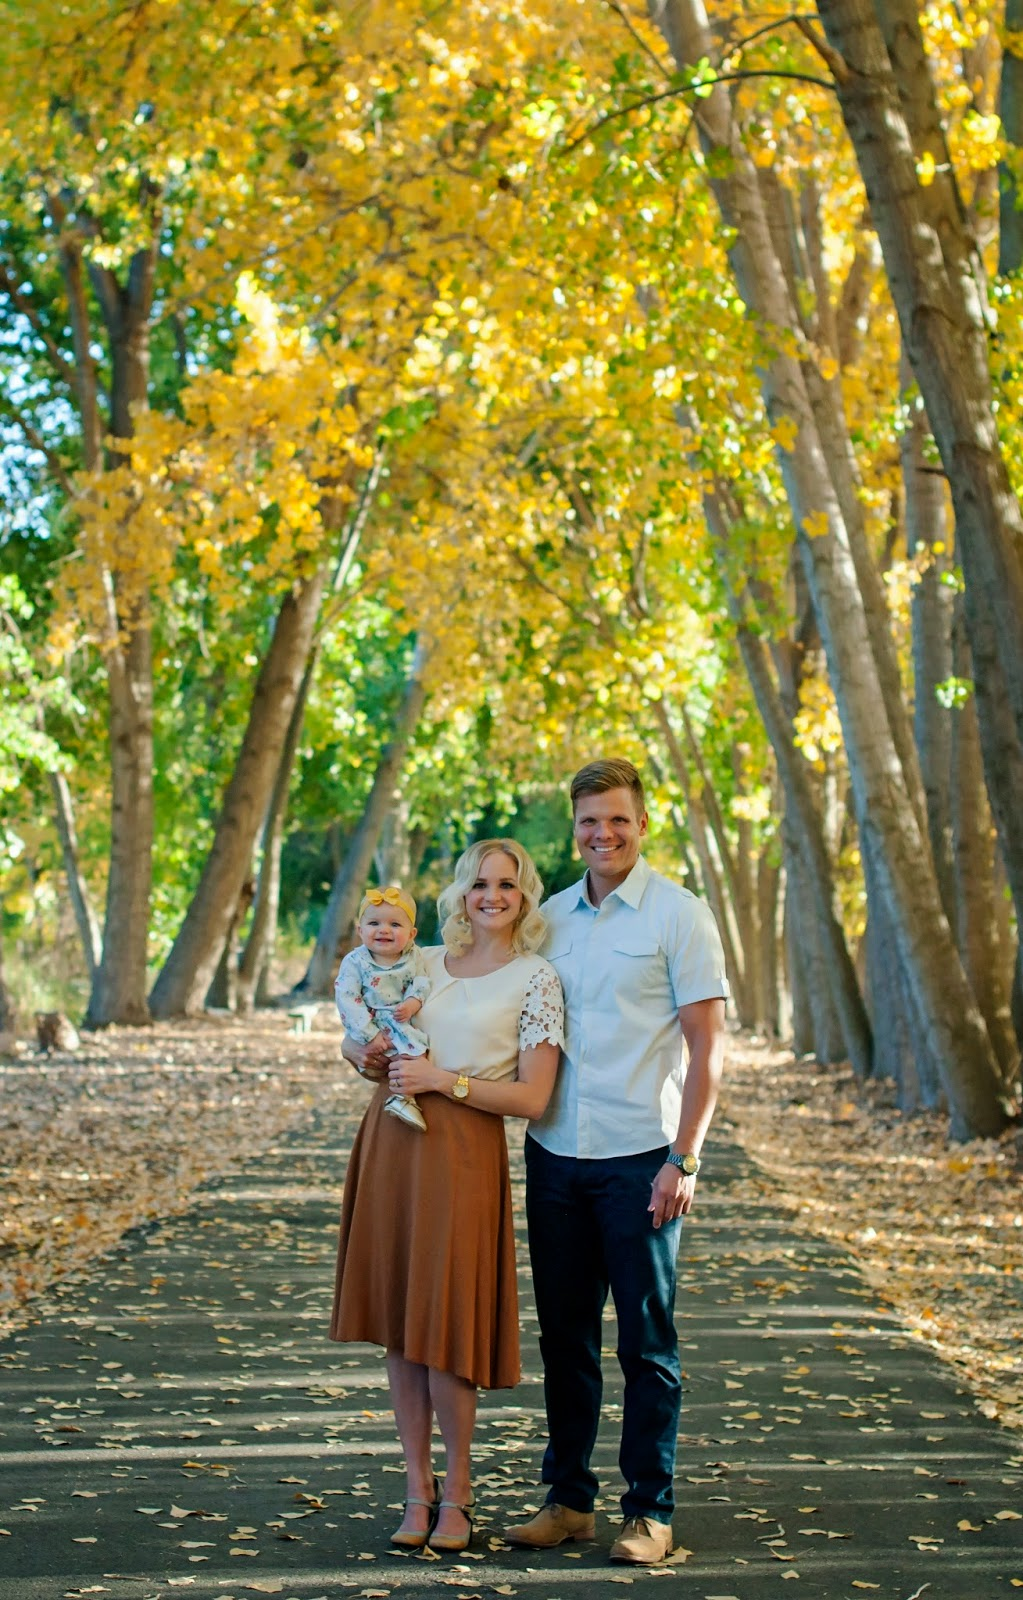 Utah Family Photographer luczakphotography.com